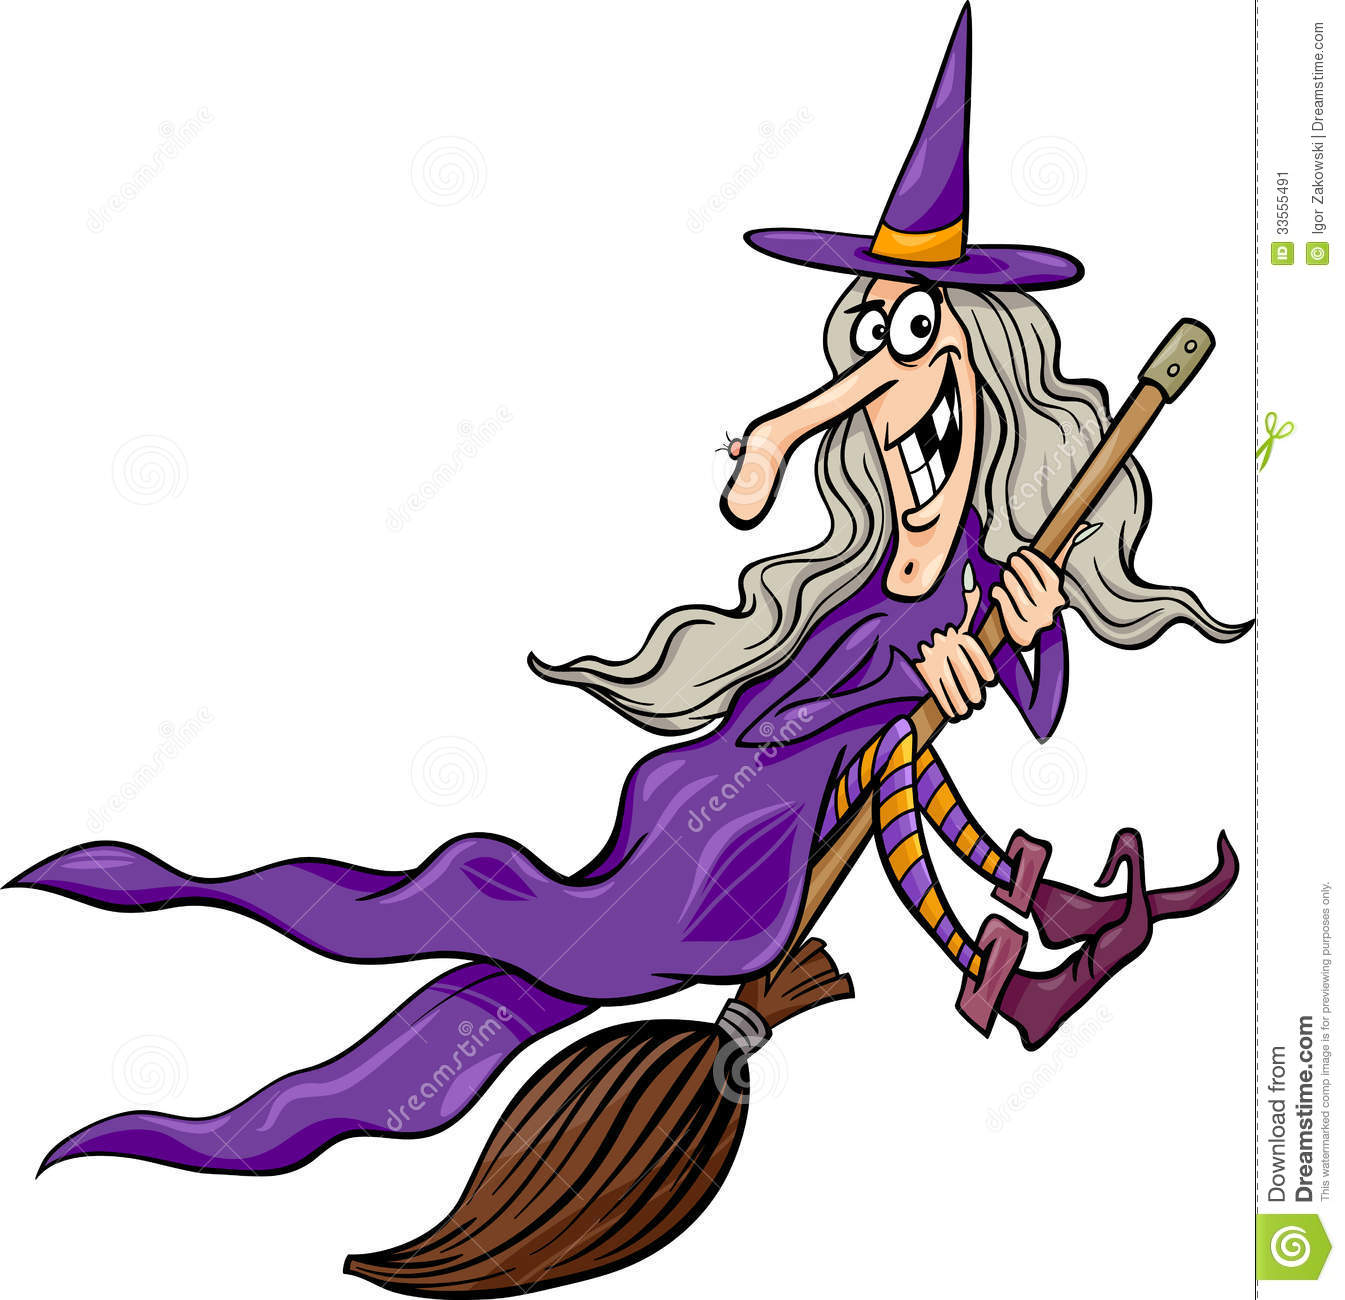 ... Illustration of Funny Fantasy or Halloween Witch Flying on Broom